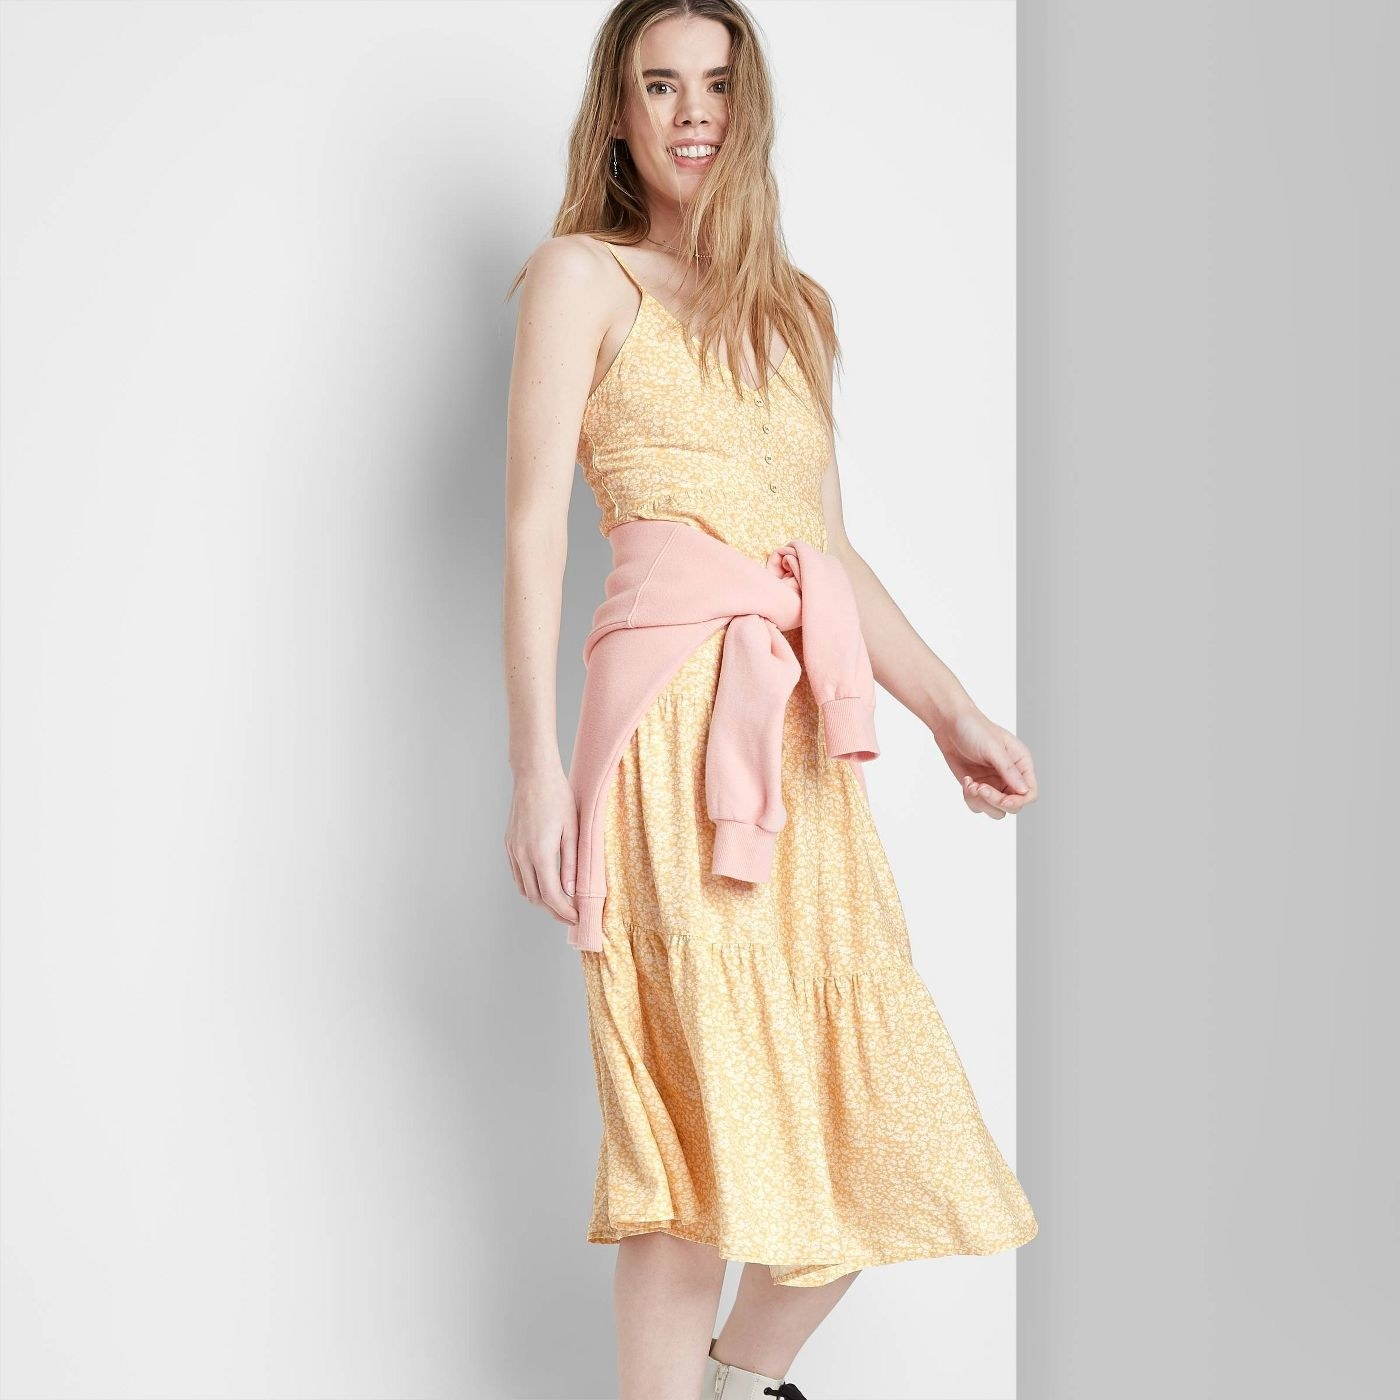 Model wearing yellow dress with light orange pattern